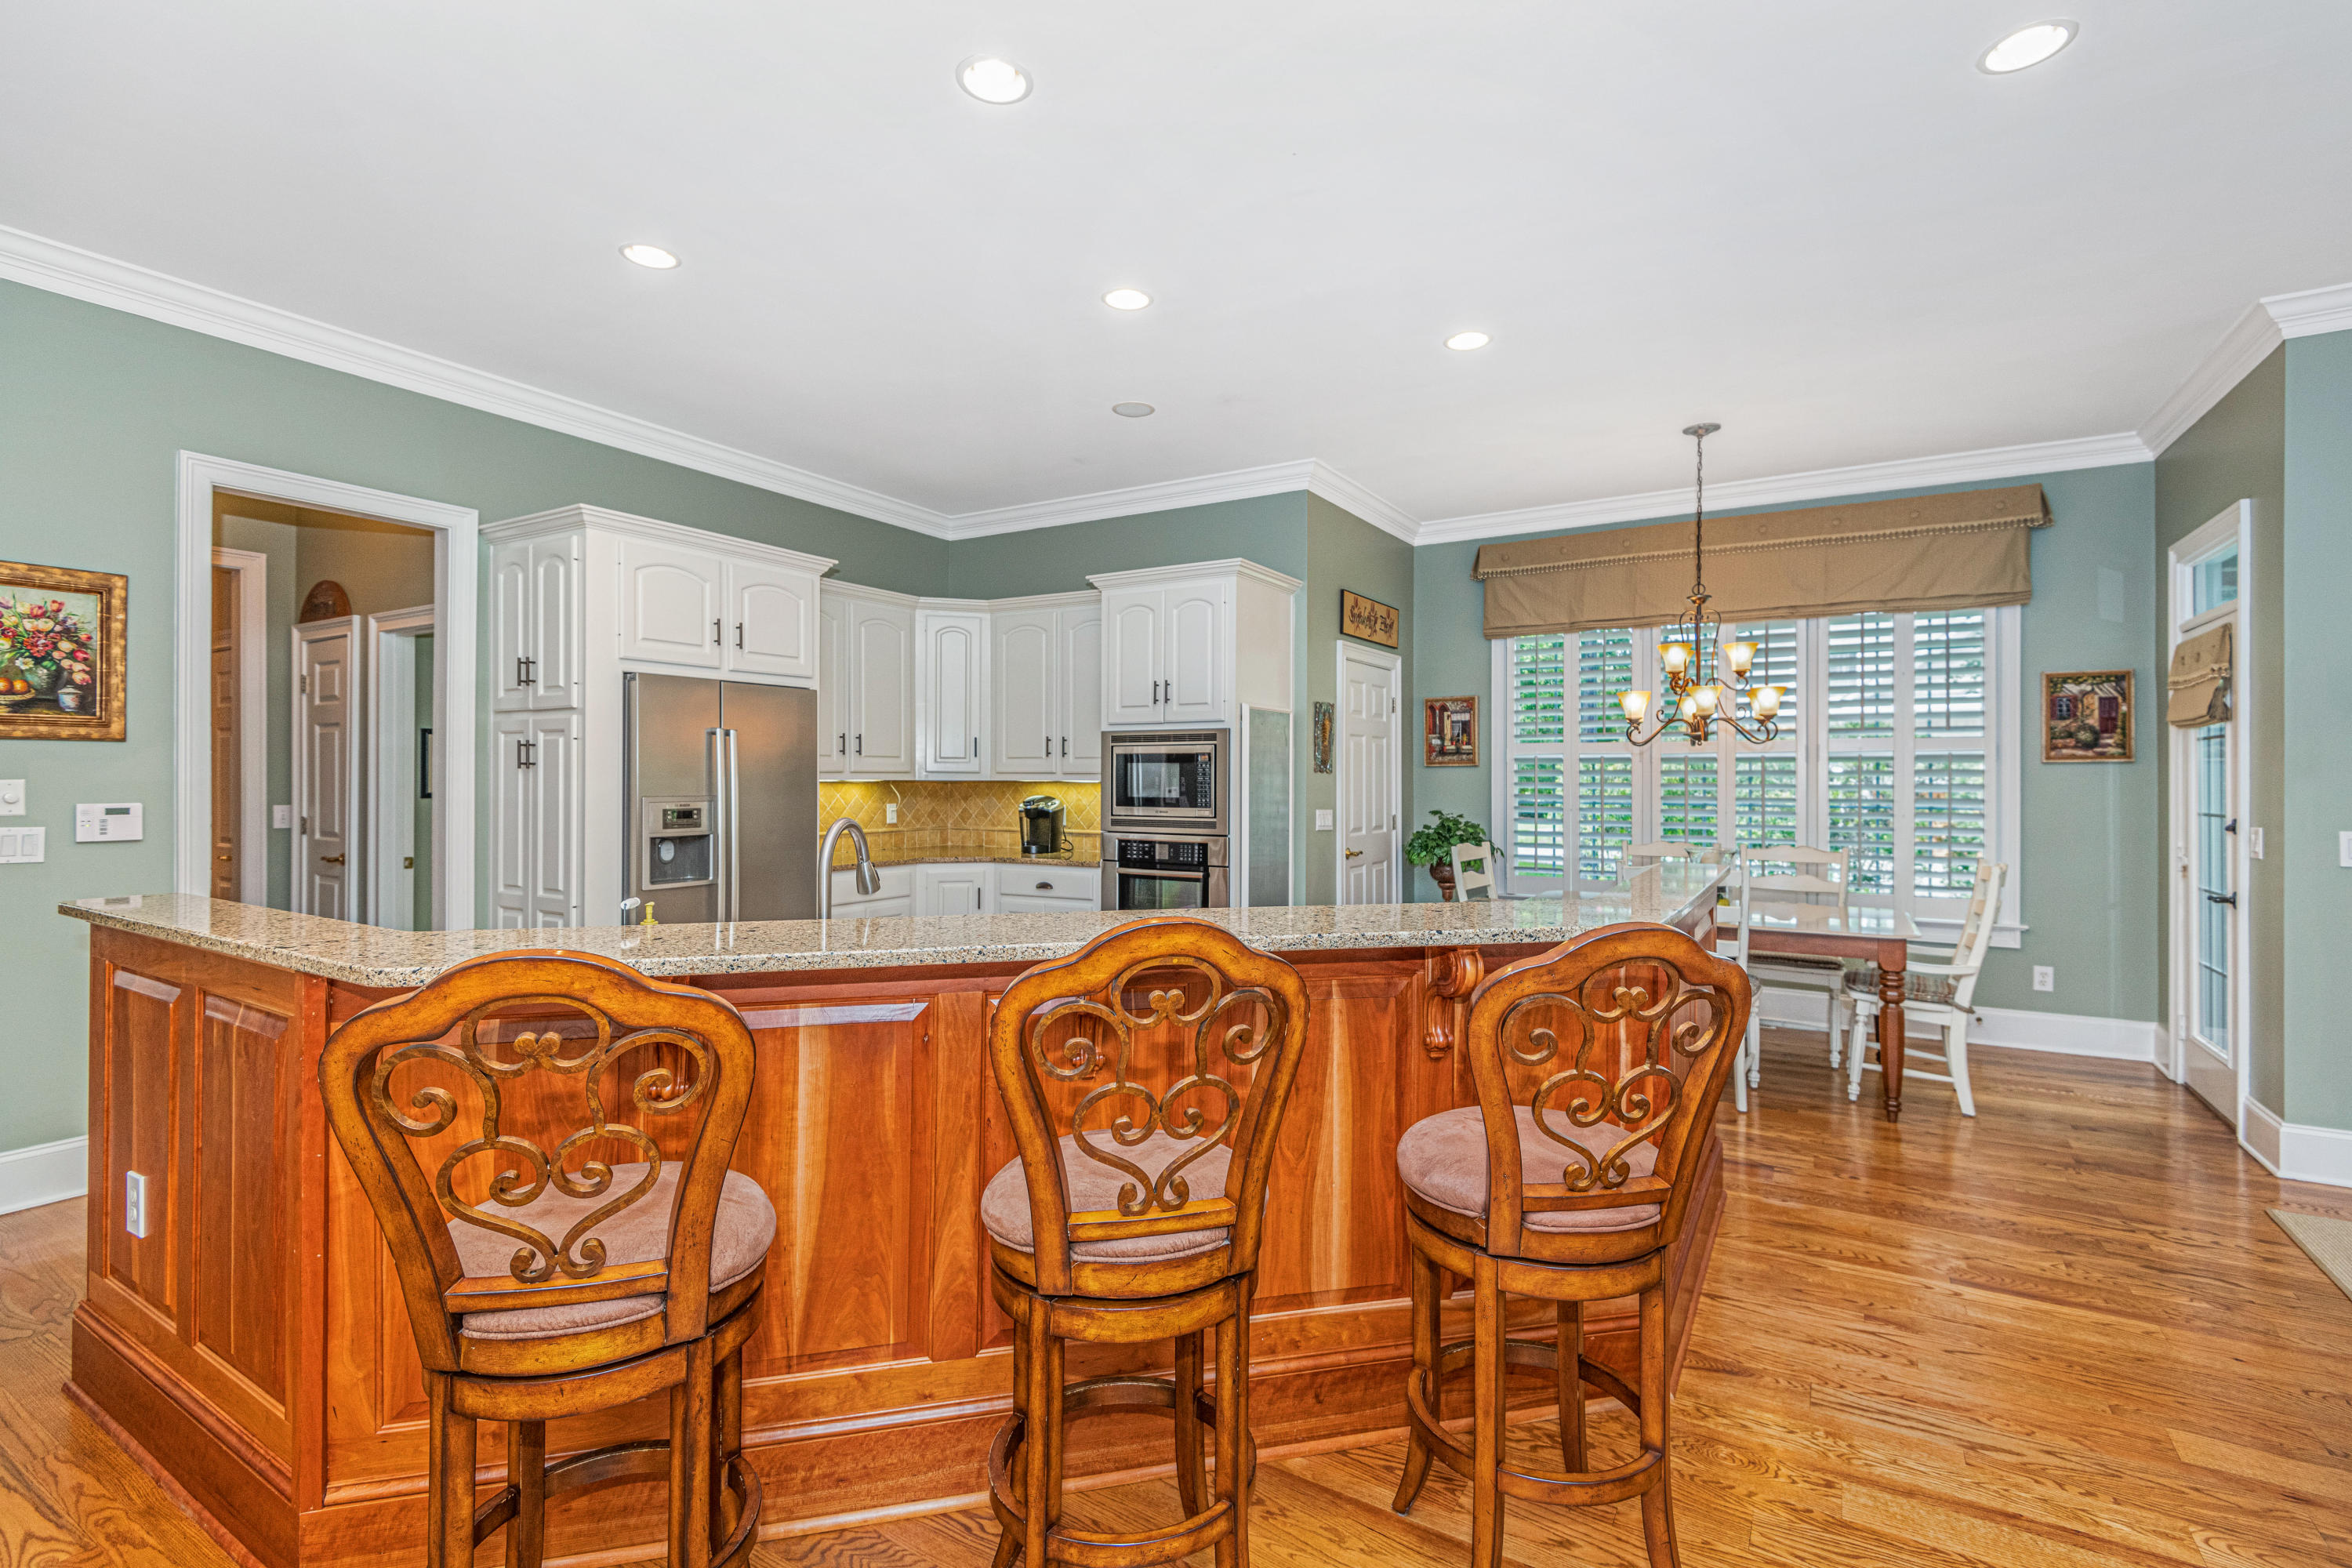 Dunes West Homes For Sale - 1837 Shell Ring, Mount Pleasant, SC - 20